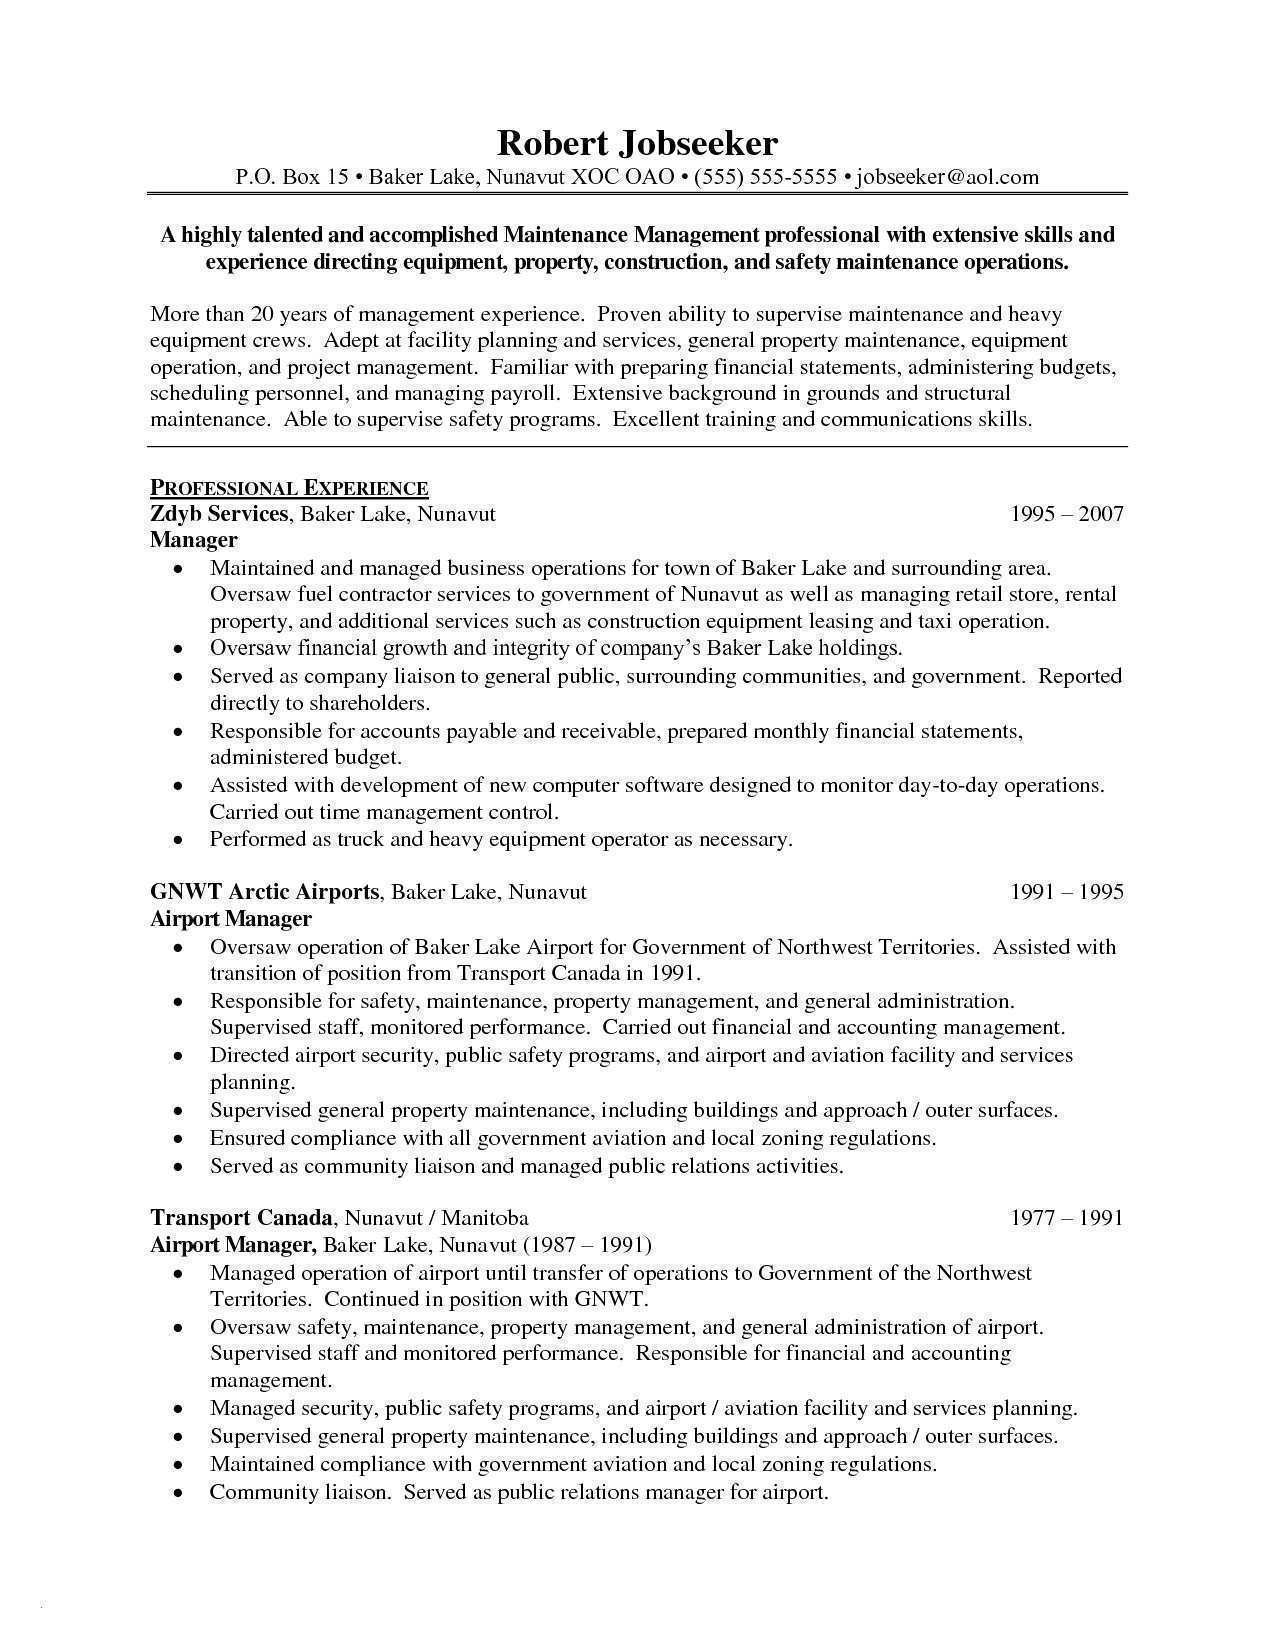 Operation Manager Resume Template - 48 Elegant Cover Letter for Maintenance Manager Resume Designs